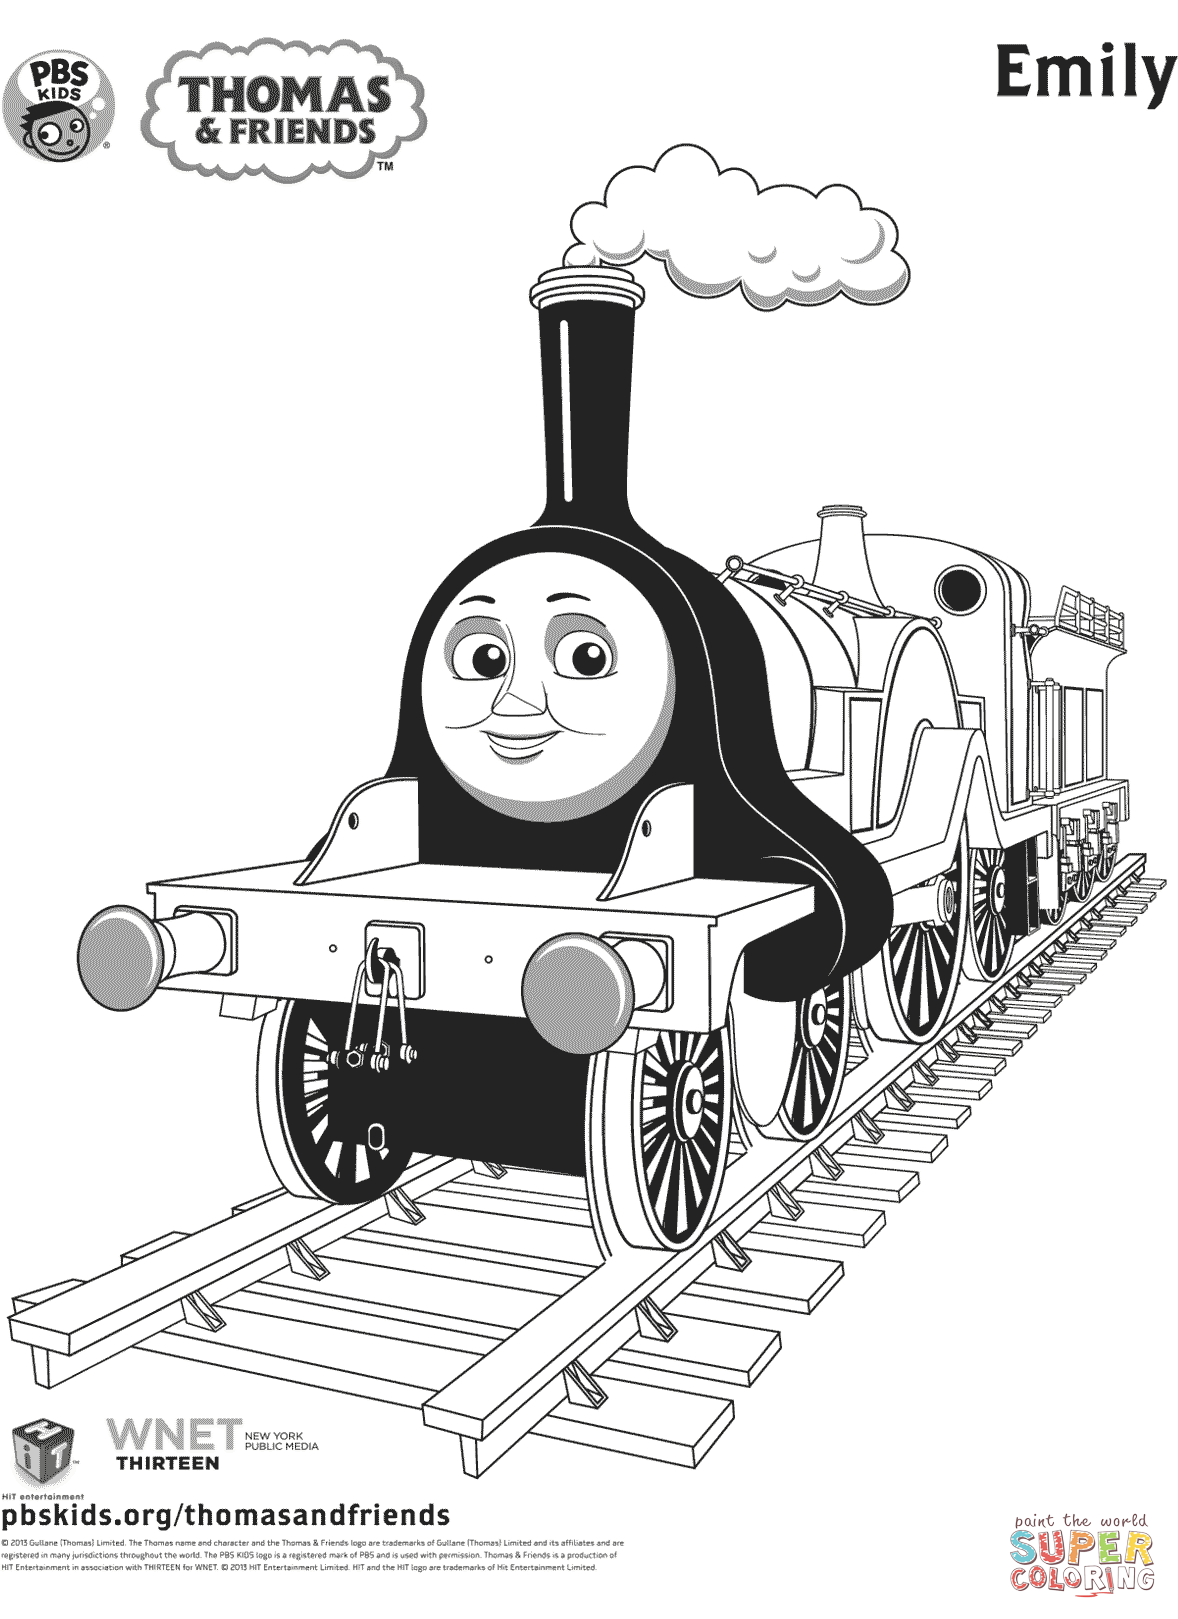 thomas and friends coloring sheets get this thomas the train coloring pages online 28571 friends thomas sheets coloring and